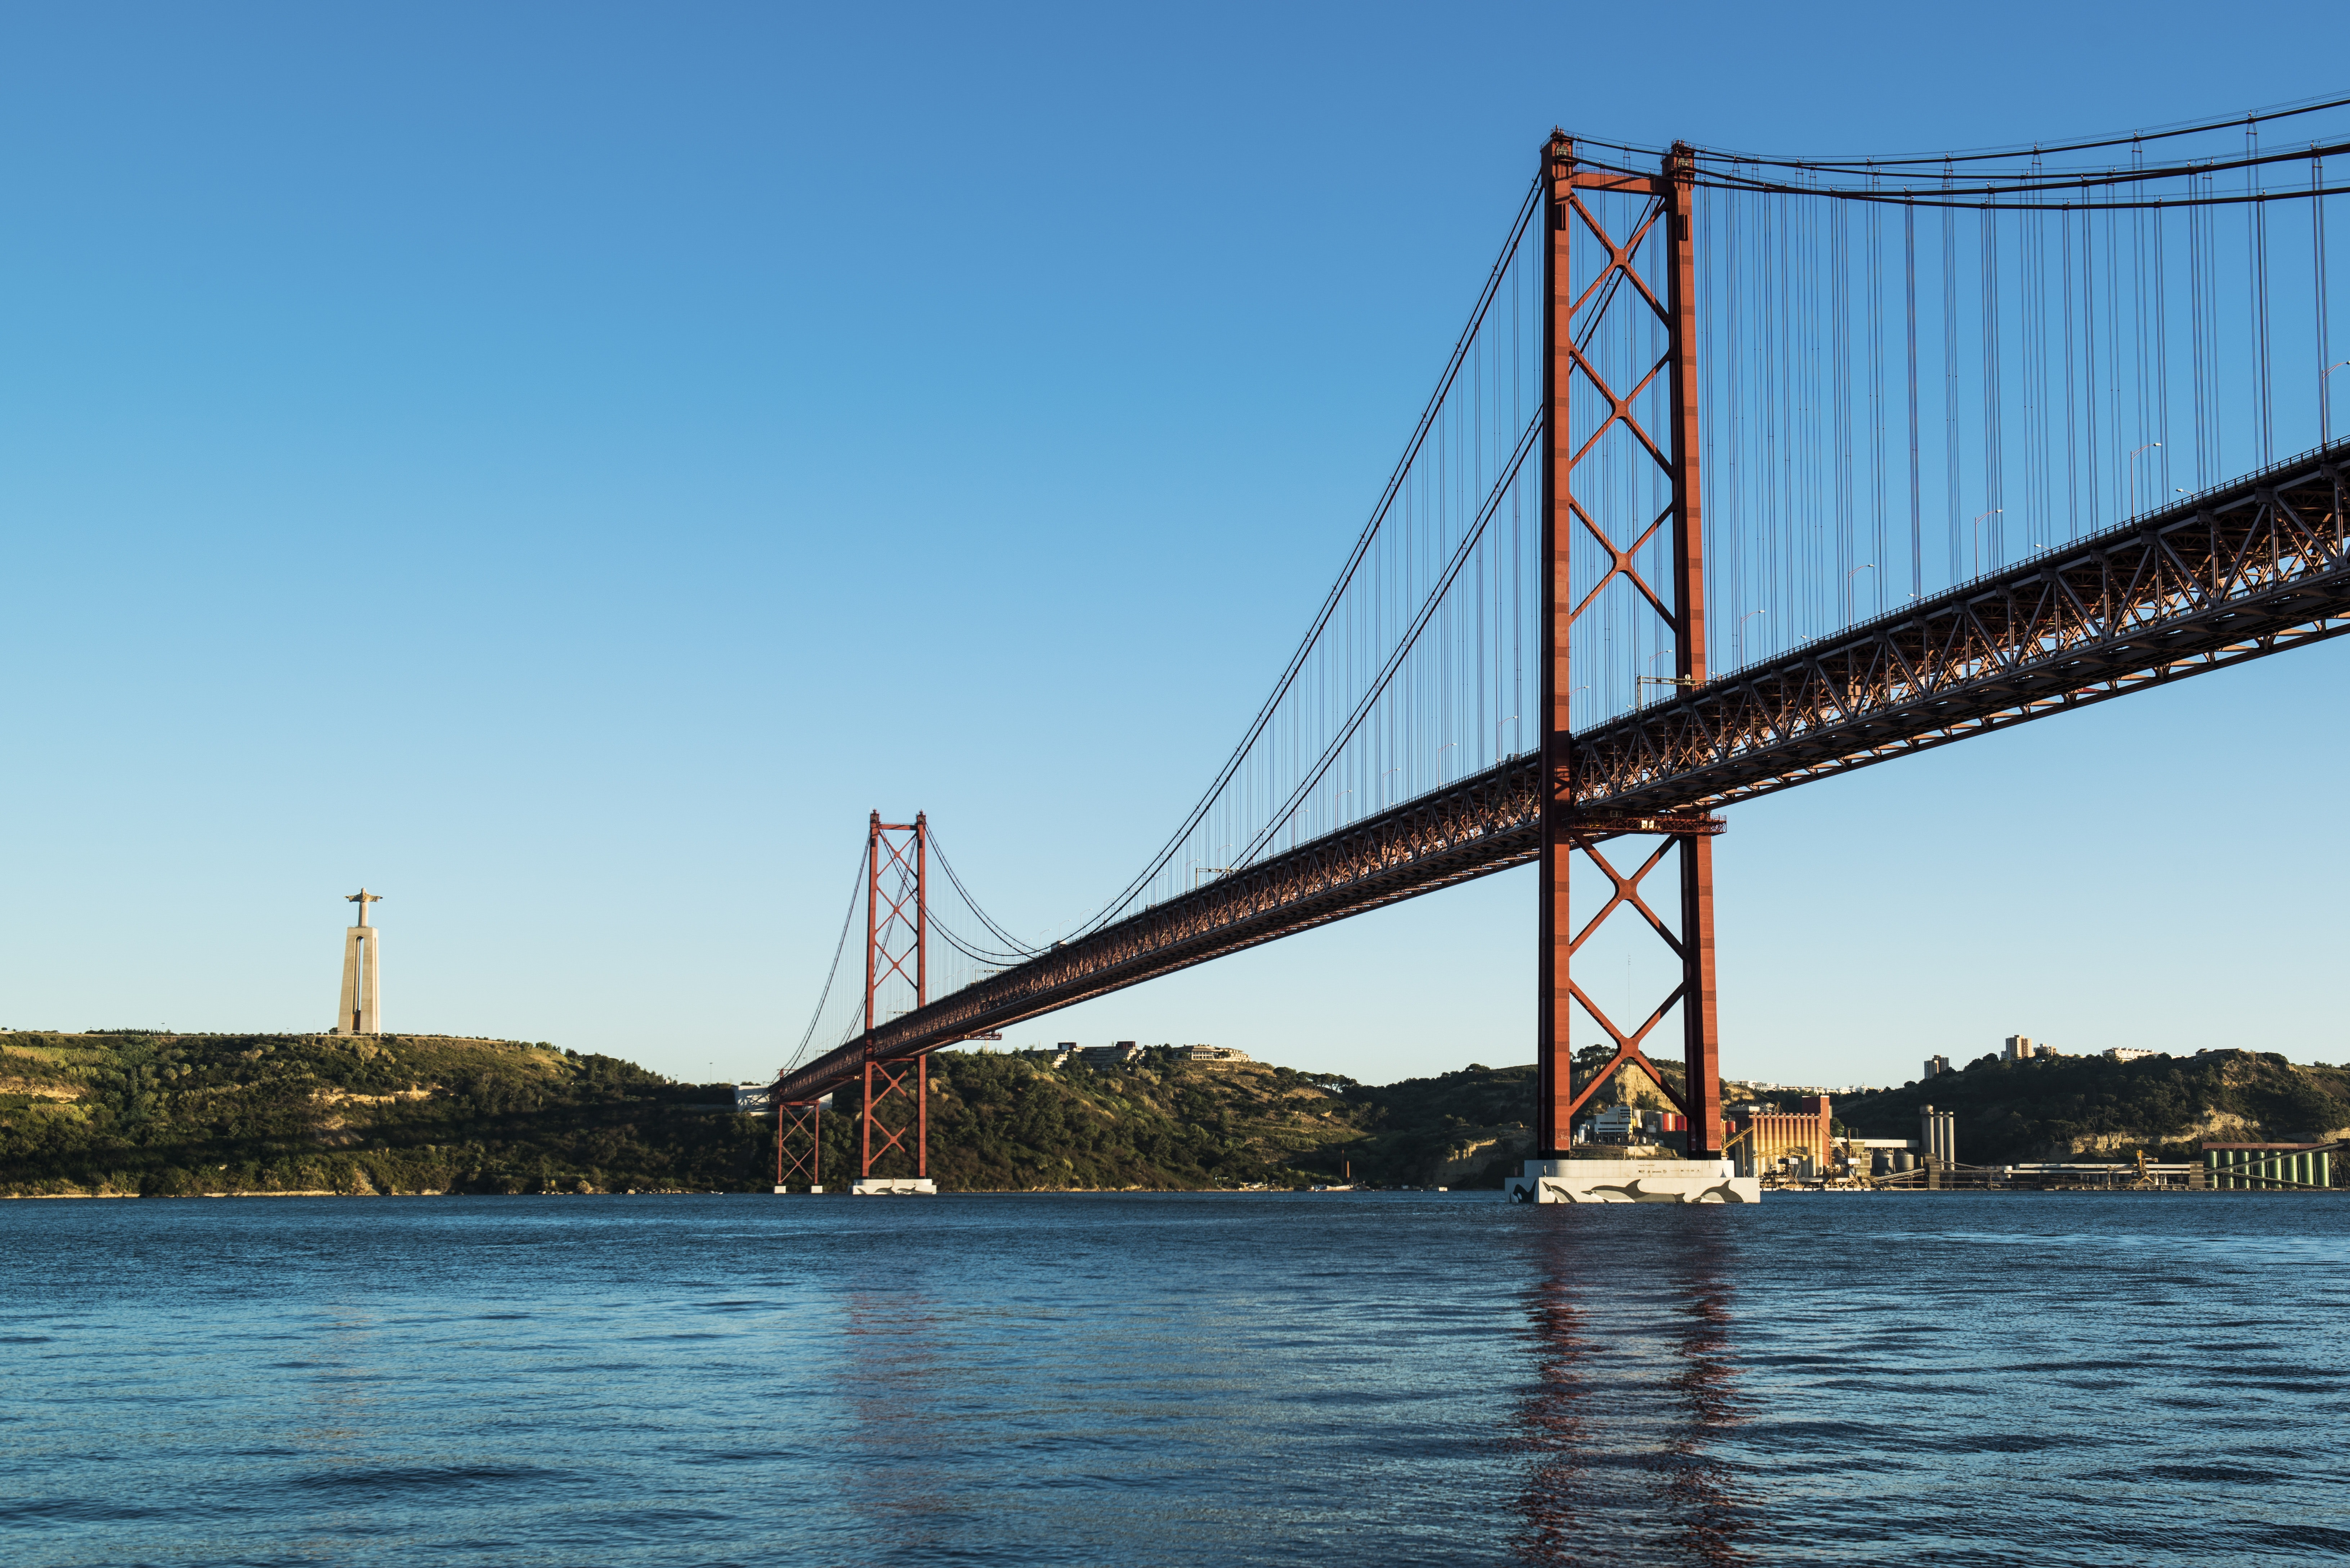 25-de-abril-bridge-architecture-bridge-290141